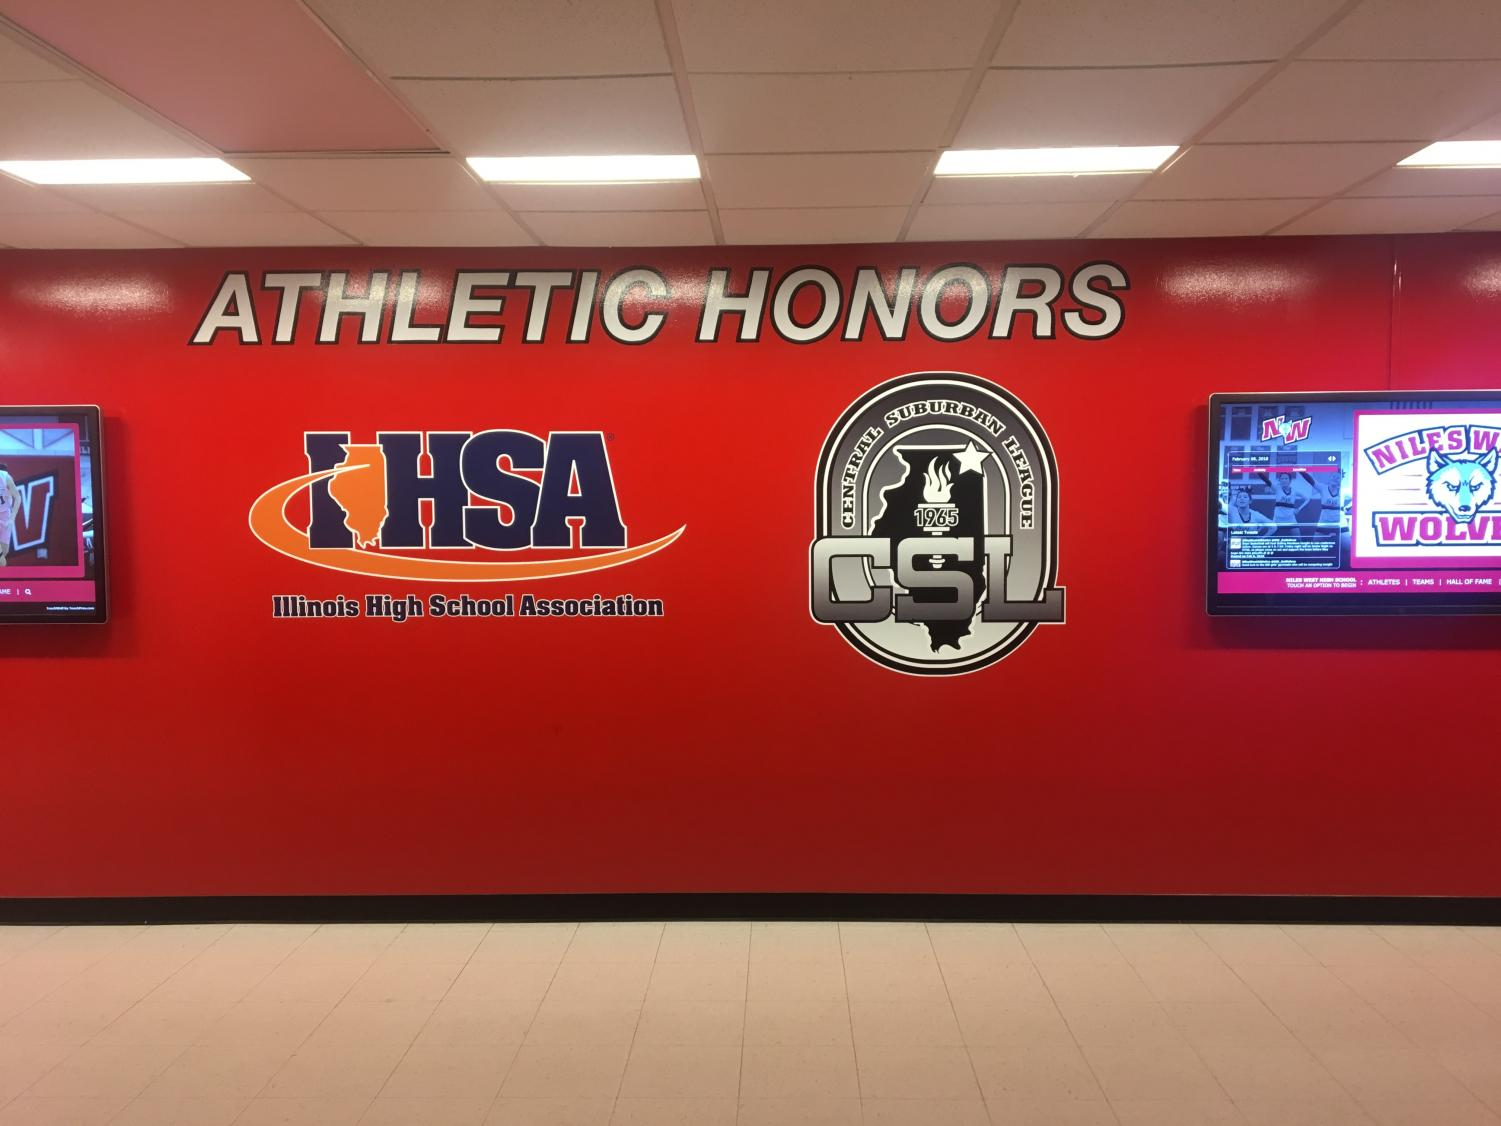 The newly painted and updated Athletic Honors wall, complete with two new touch screen display monitors.